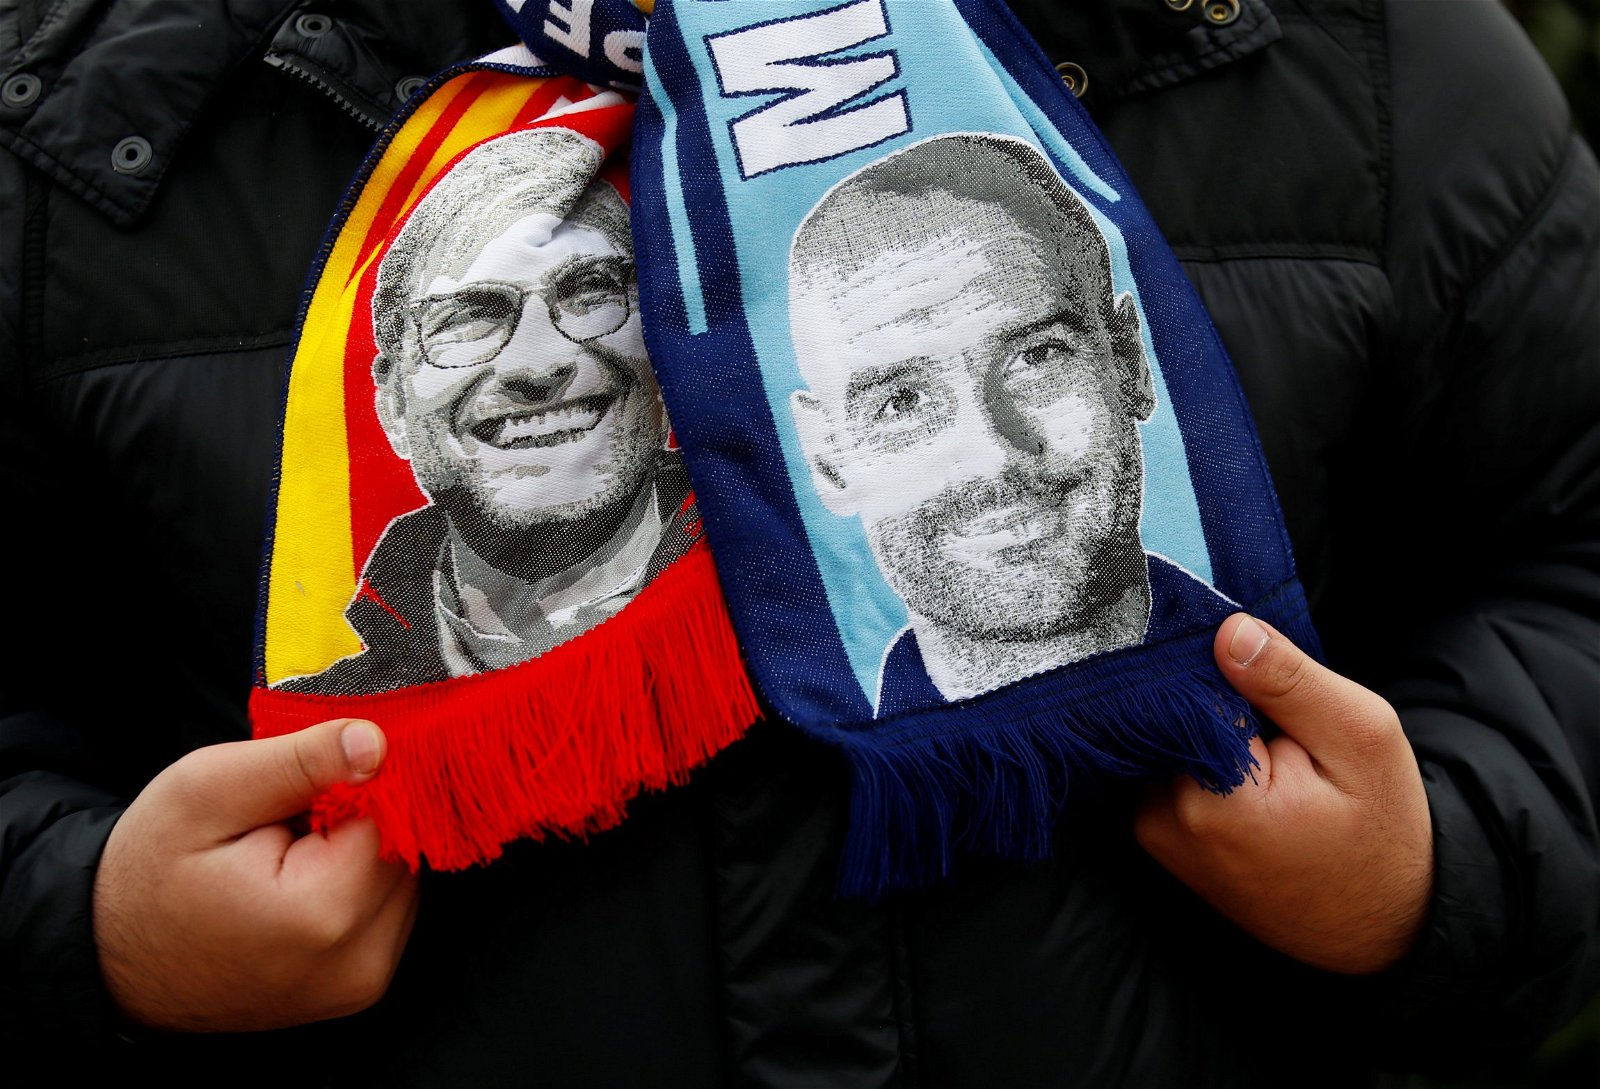 Jurgen Klopp and Pep Guardiola